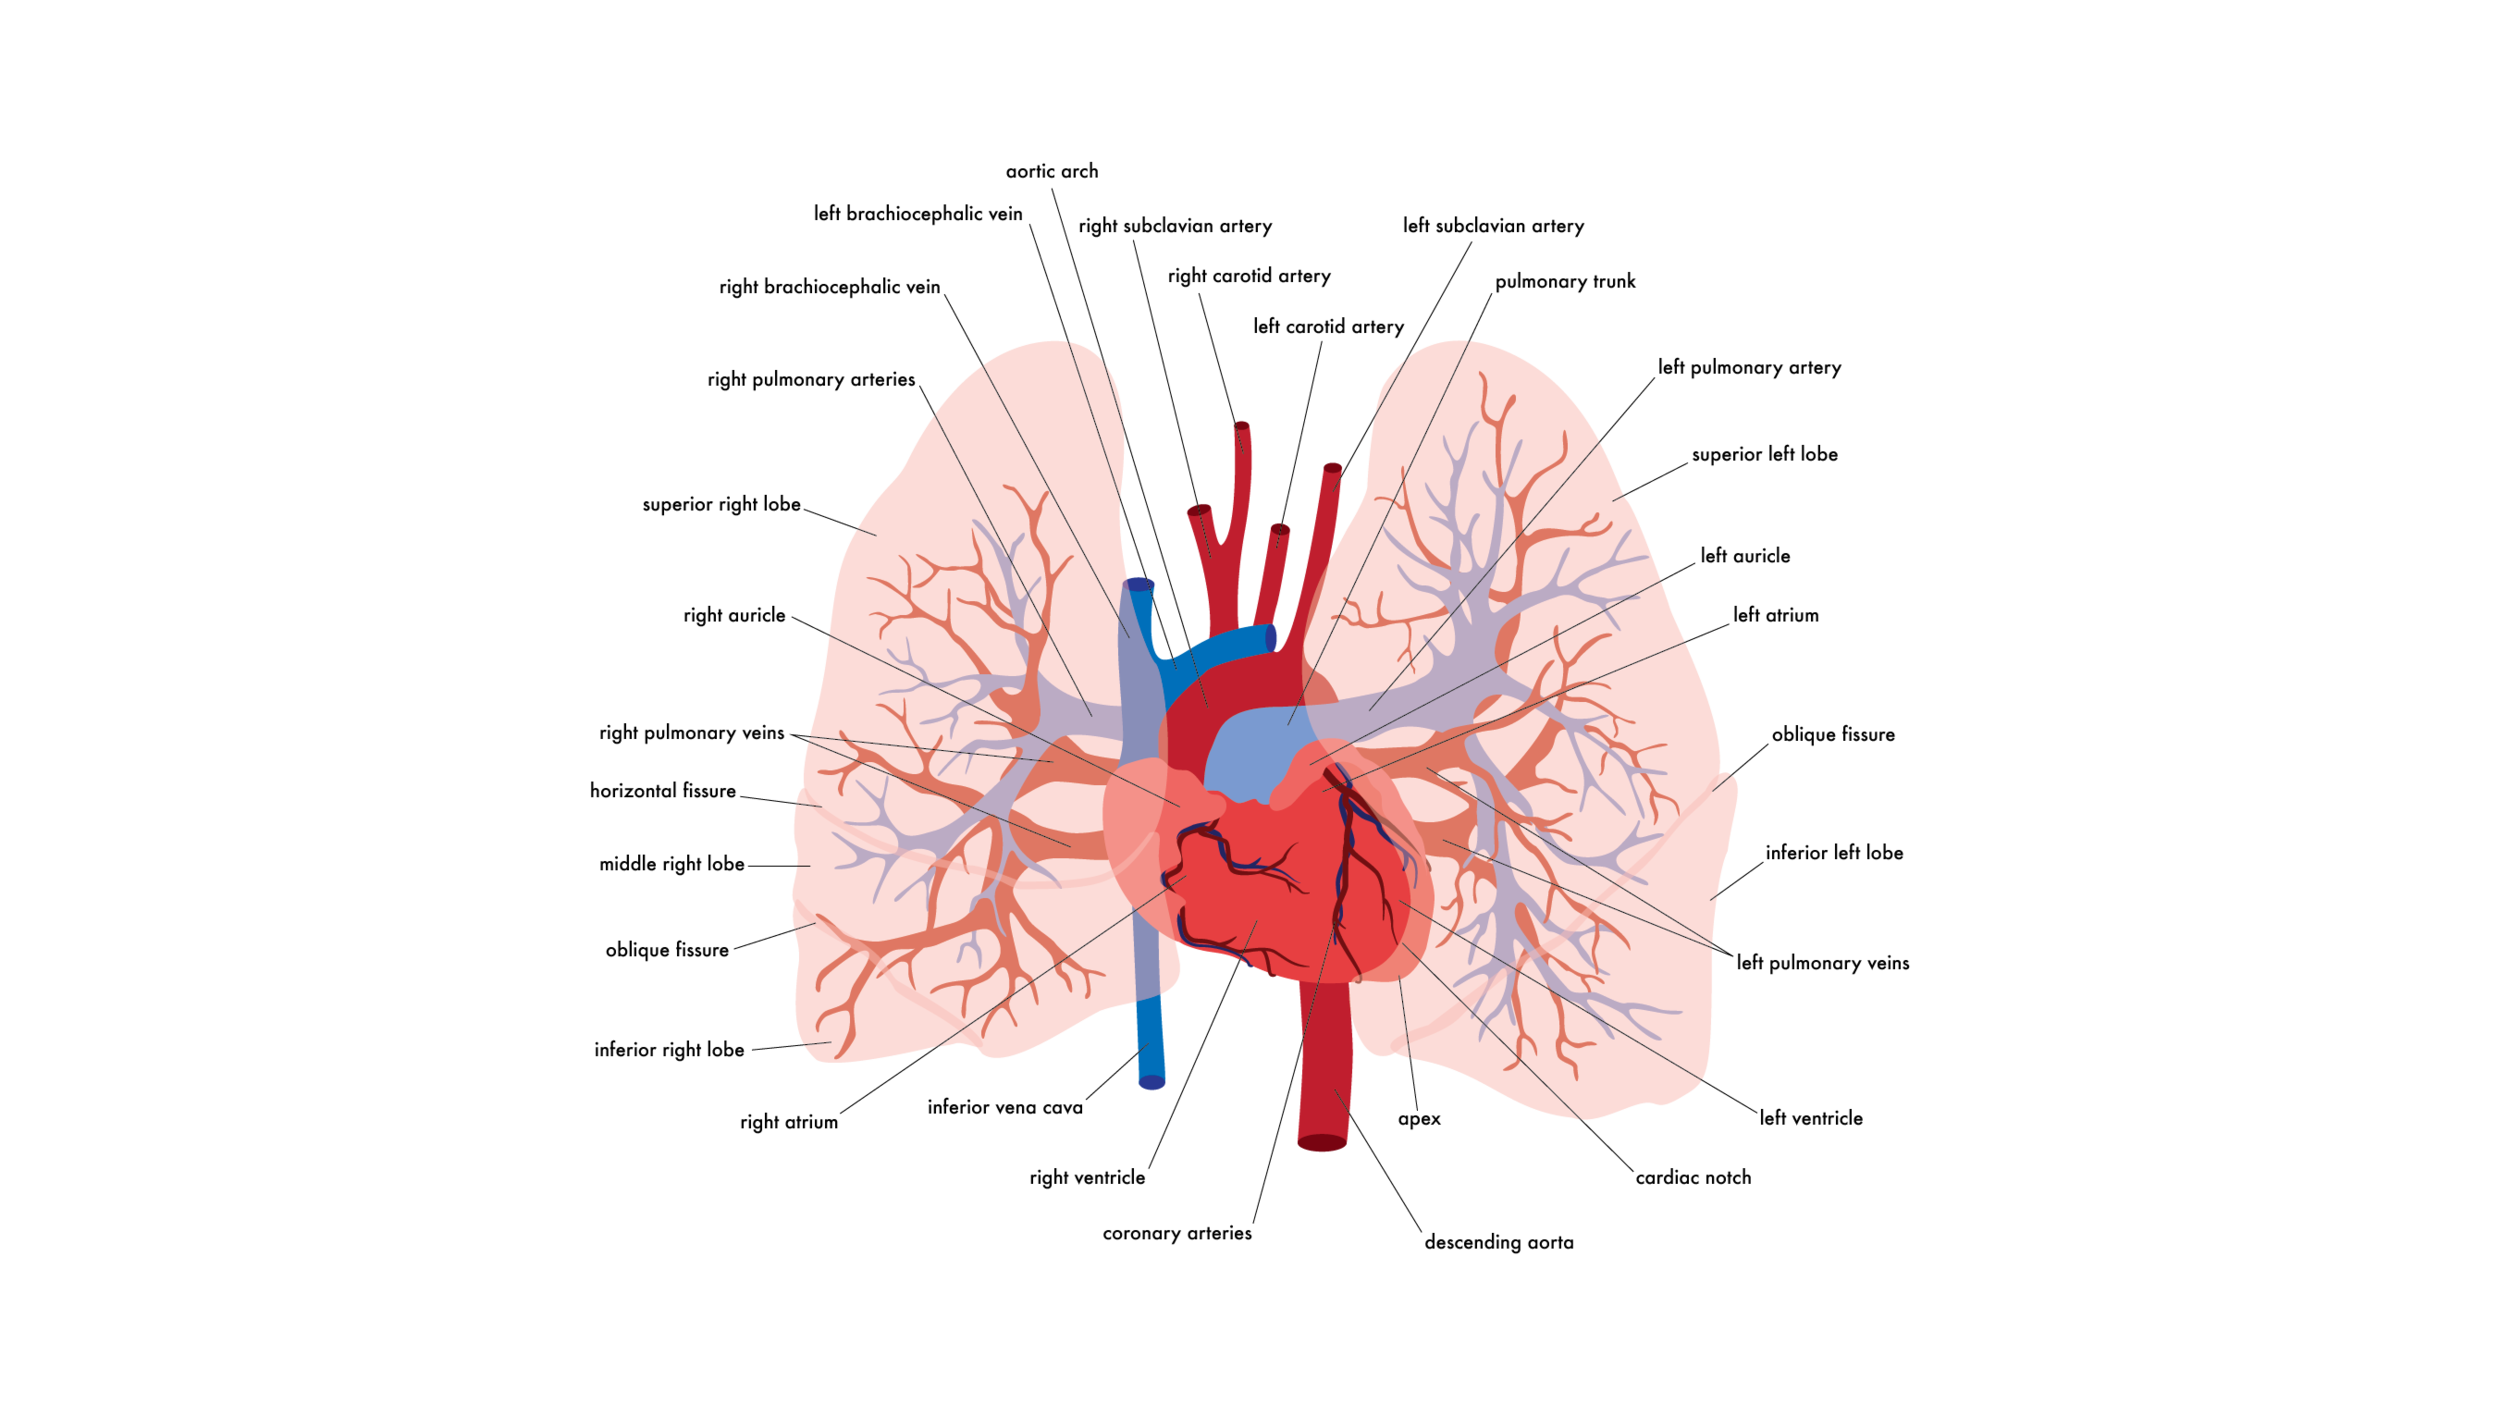 heart & lungs-11x14 for print-portfolio-02.png